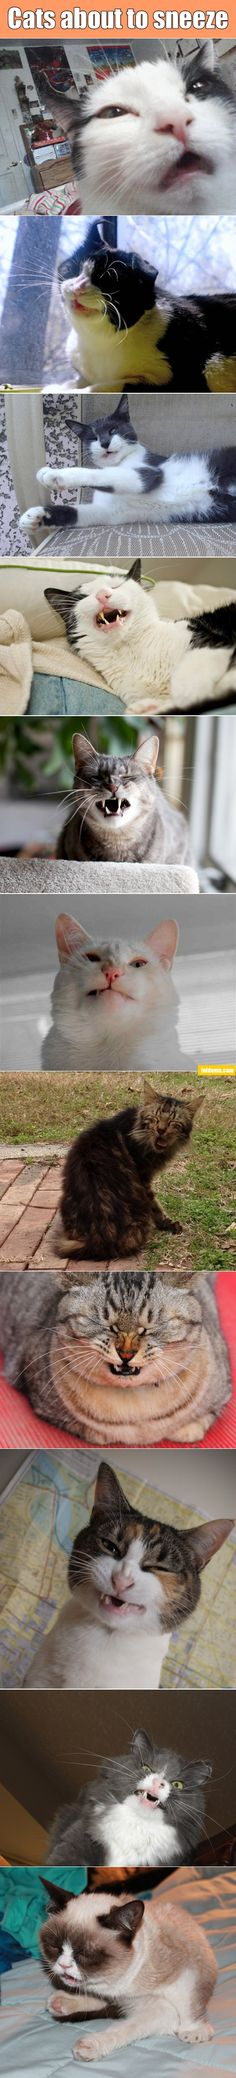 """LOL - this is the most random set of cat photos I've seen yet. """"Cats about to sneeze."""""""